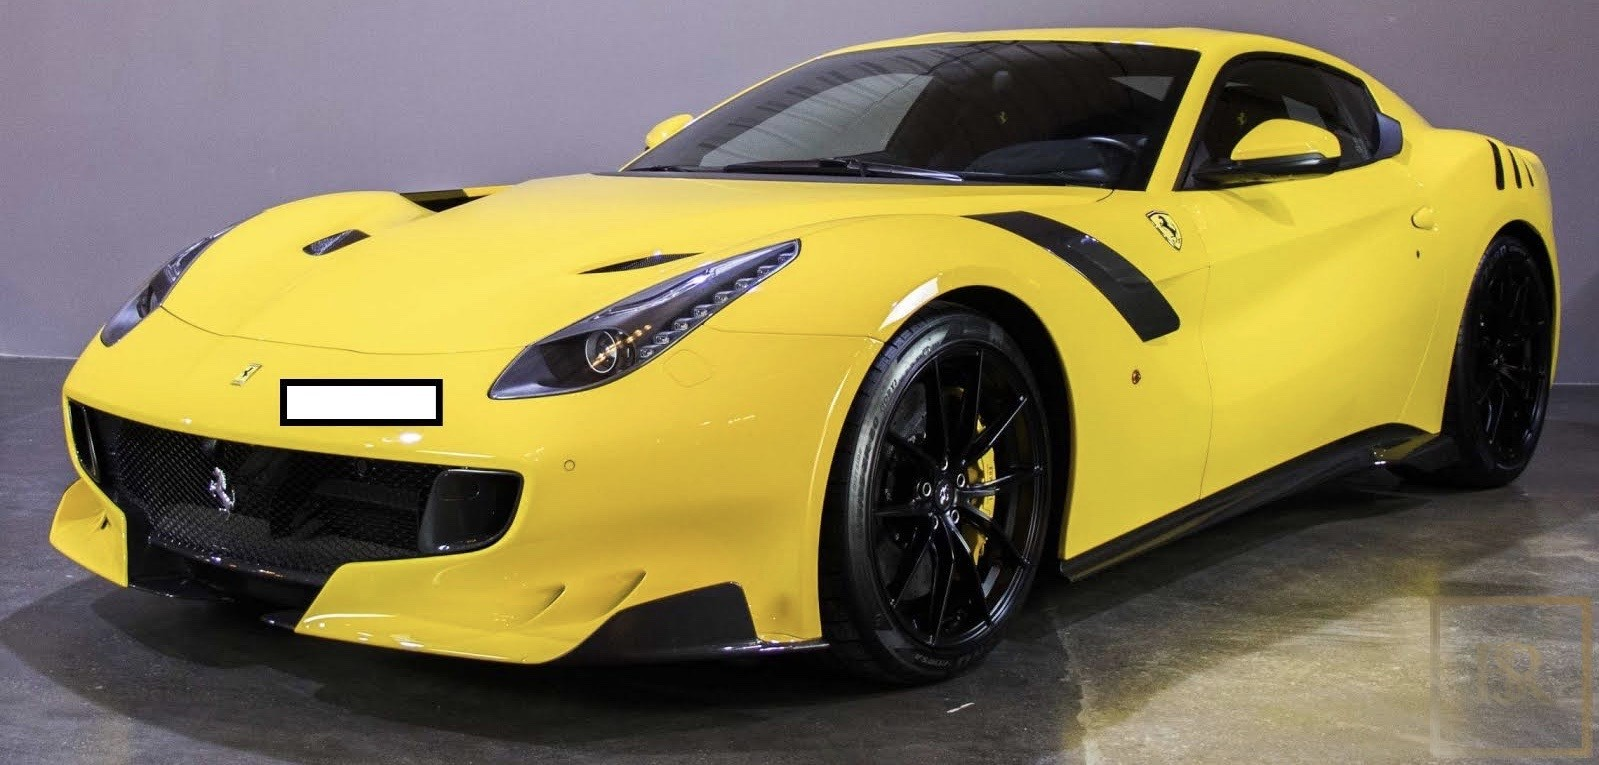 Buy Exotic Used 2016 Ferrari F12 Tdf Yellow 350km For Sale For Superrich